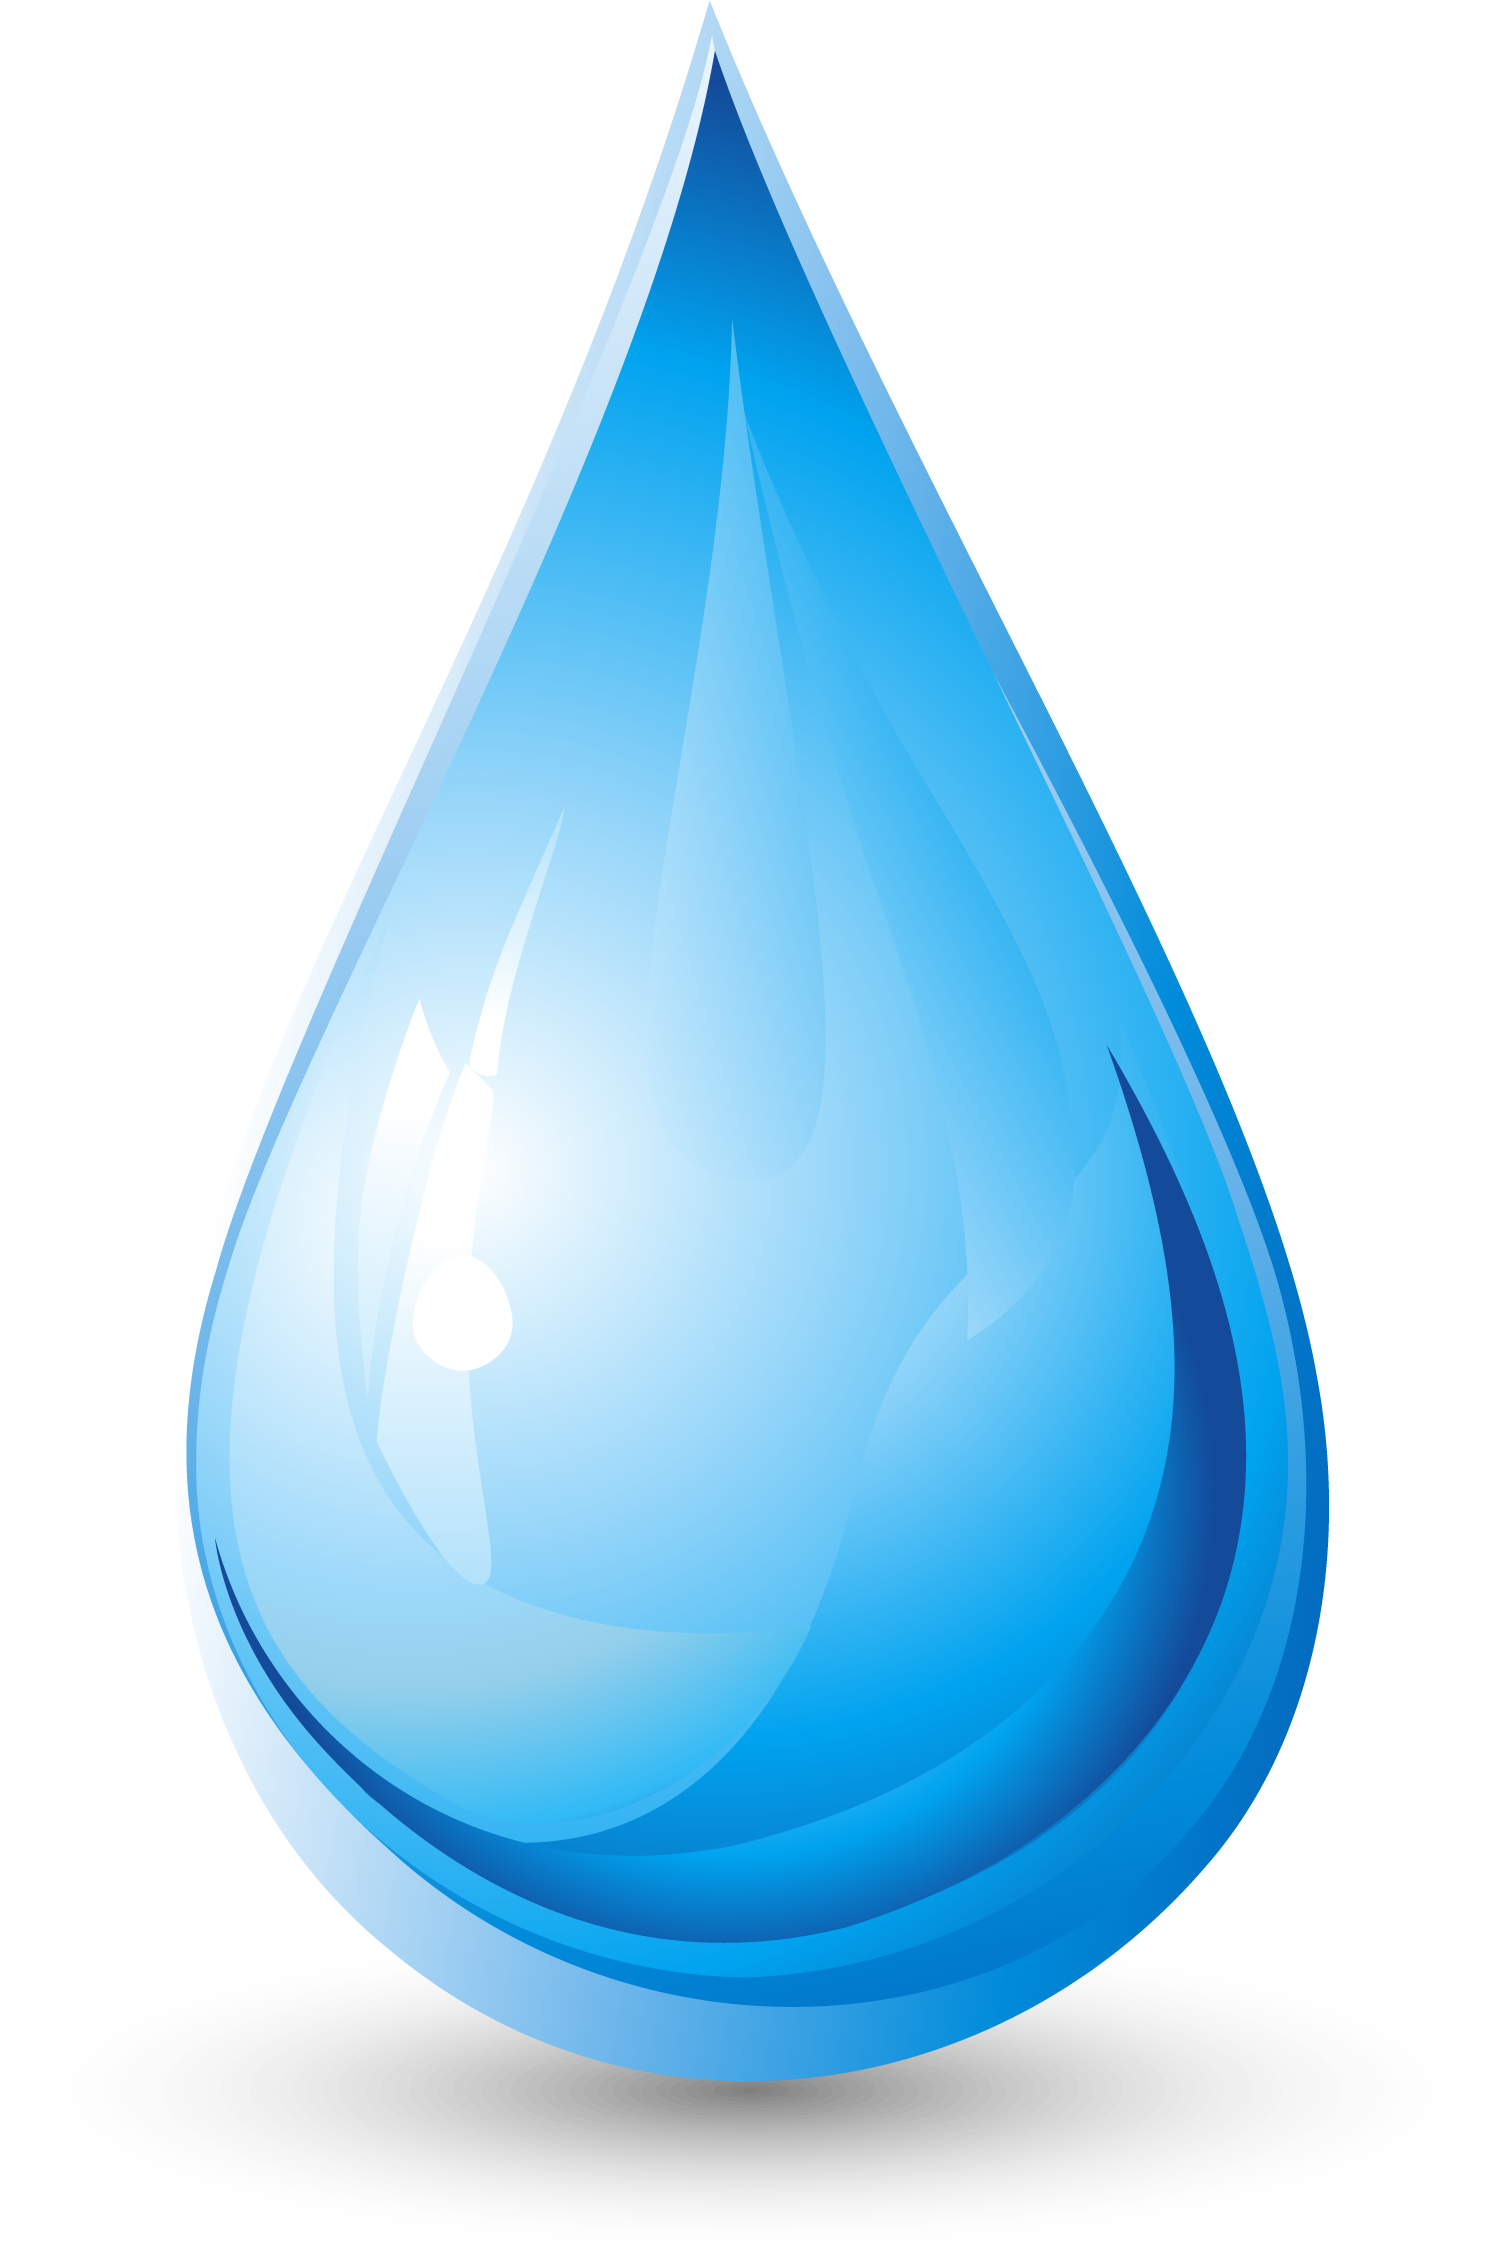 download vector drop water drop water download #11856